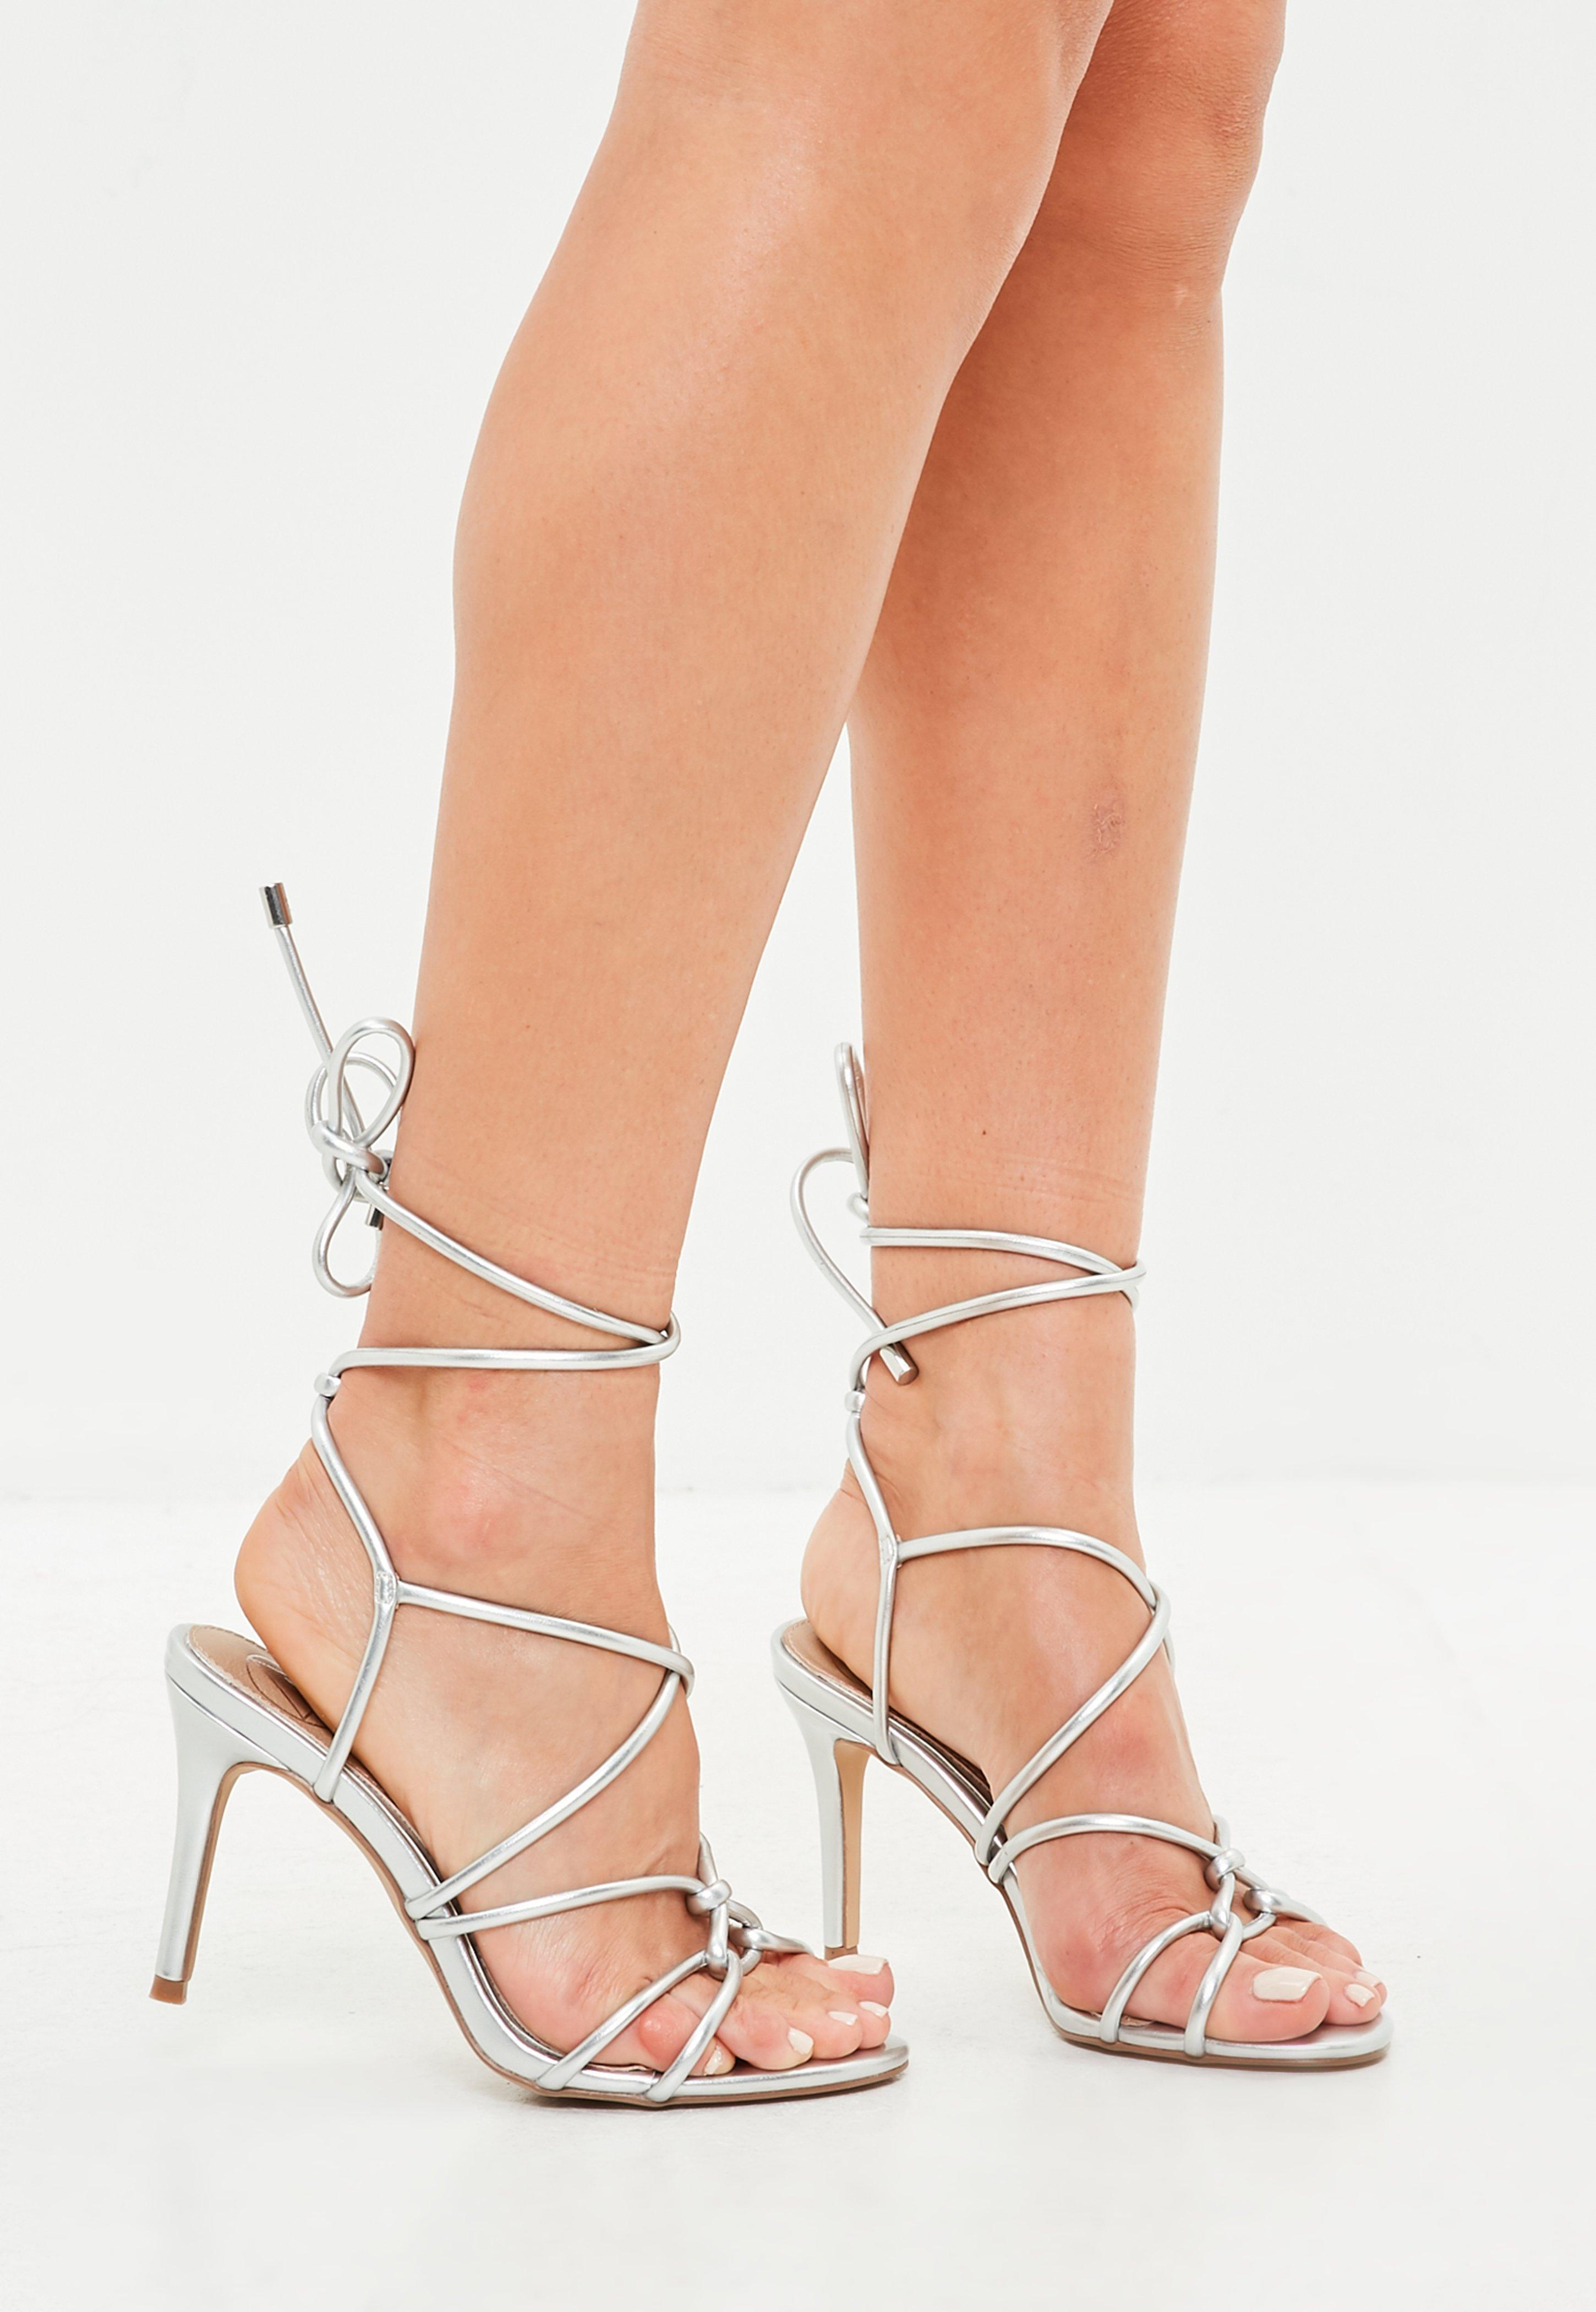 1b4742f79fc Lyst - Missguided Silver Multi Strap Gladiator Mid Heel Sandals in ...